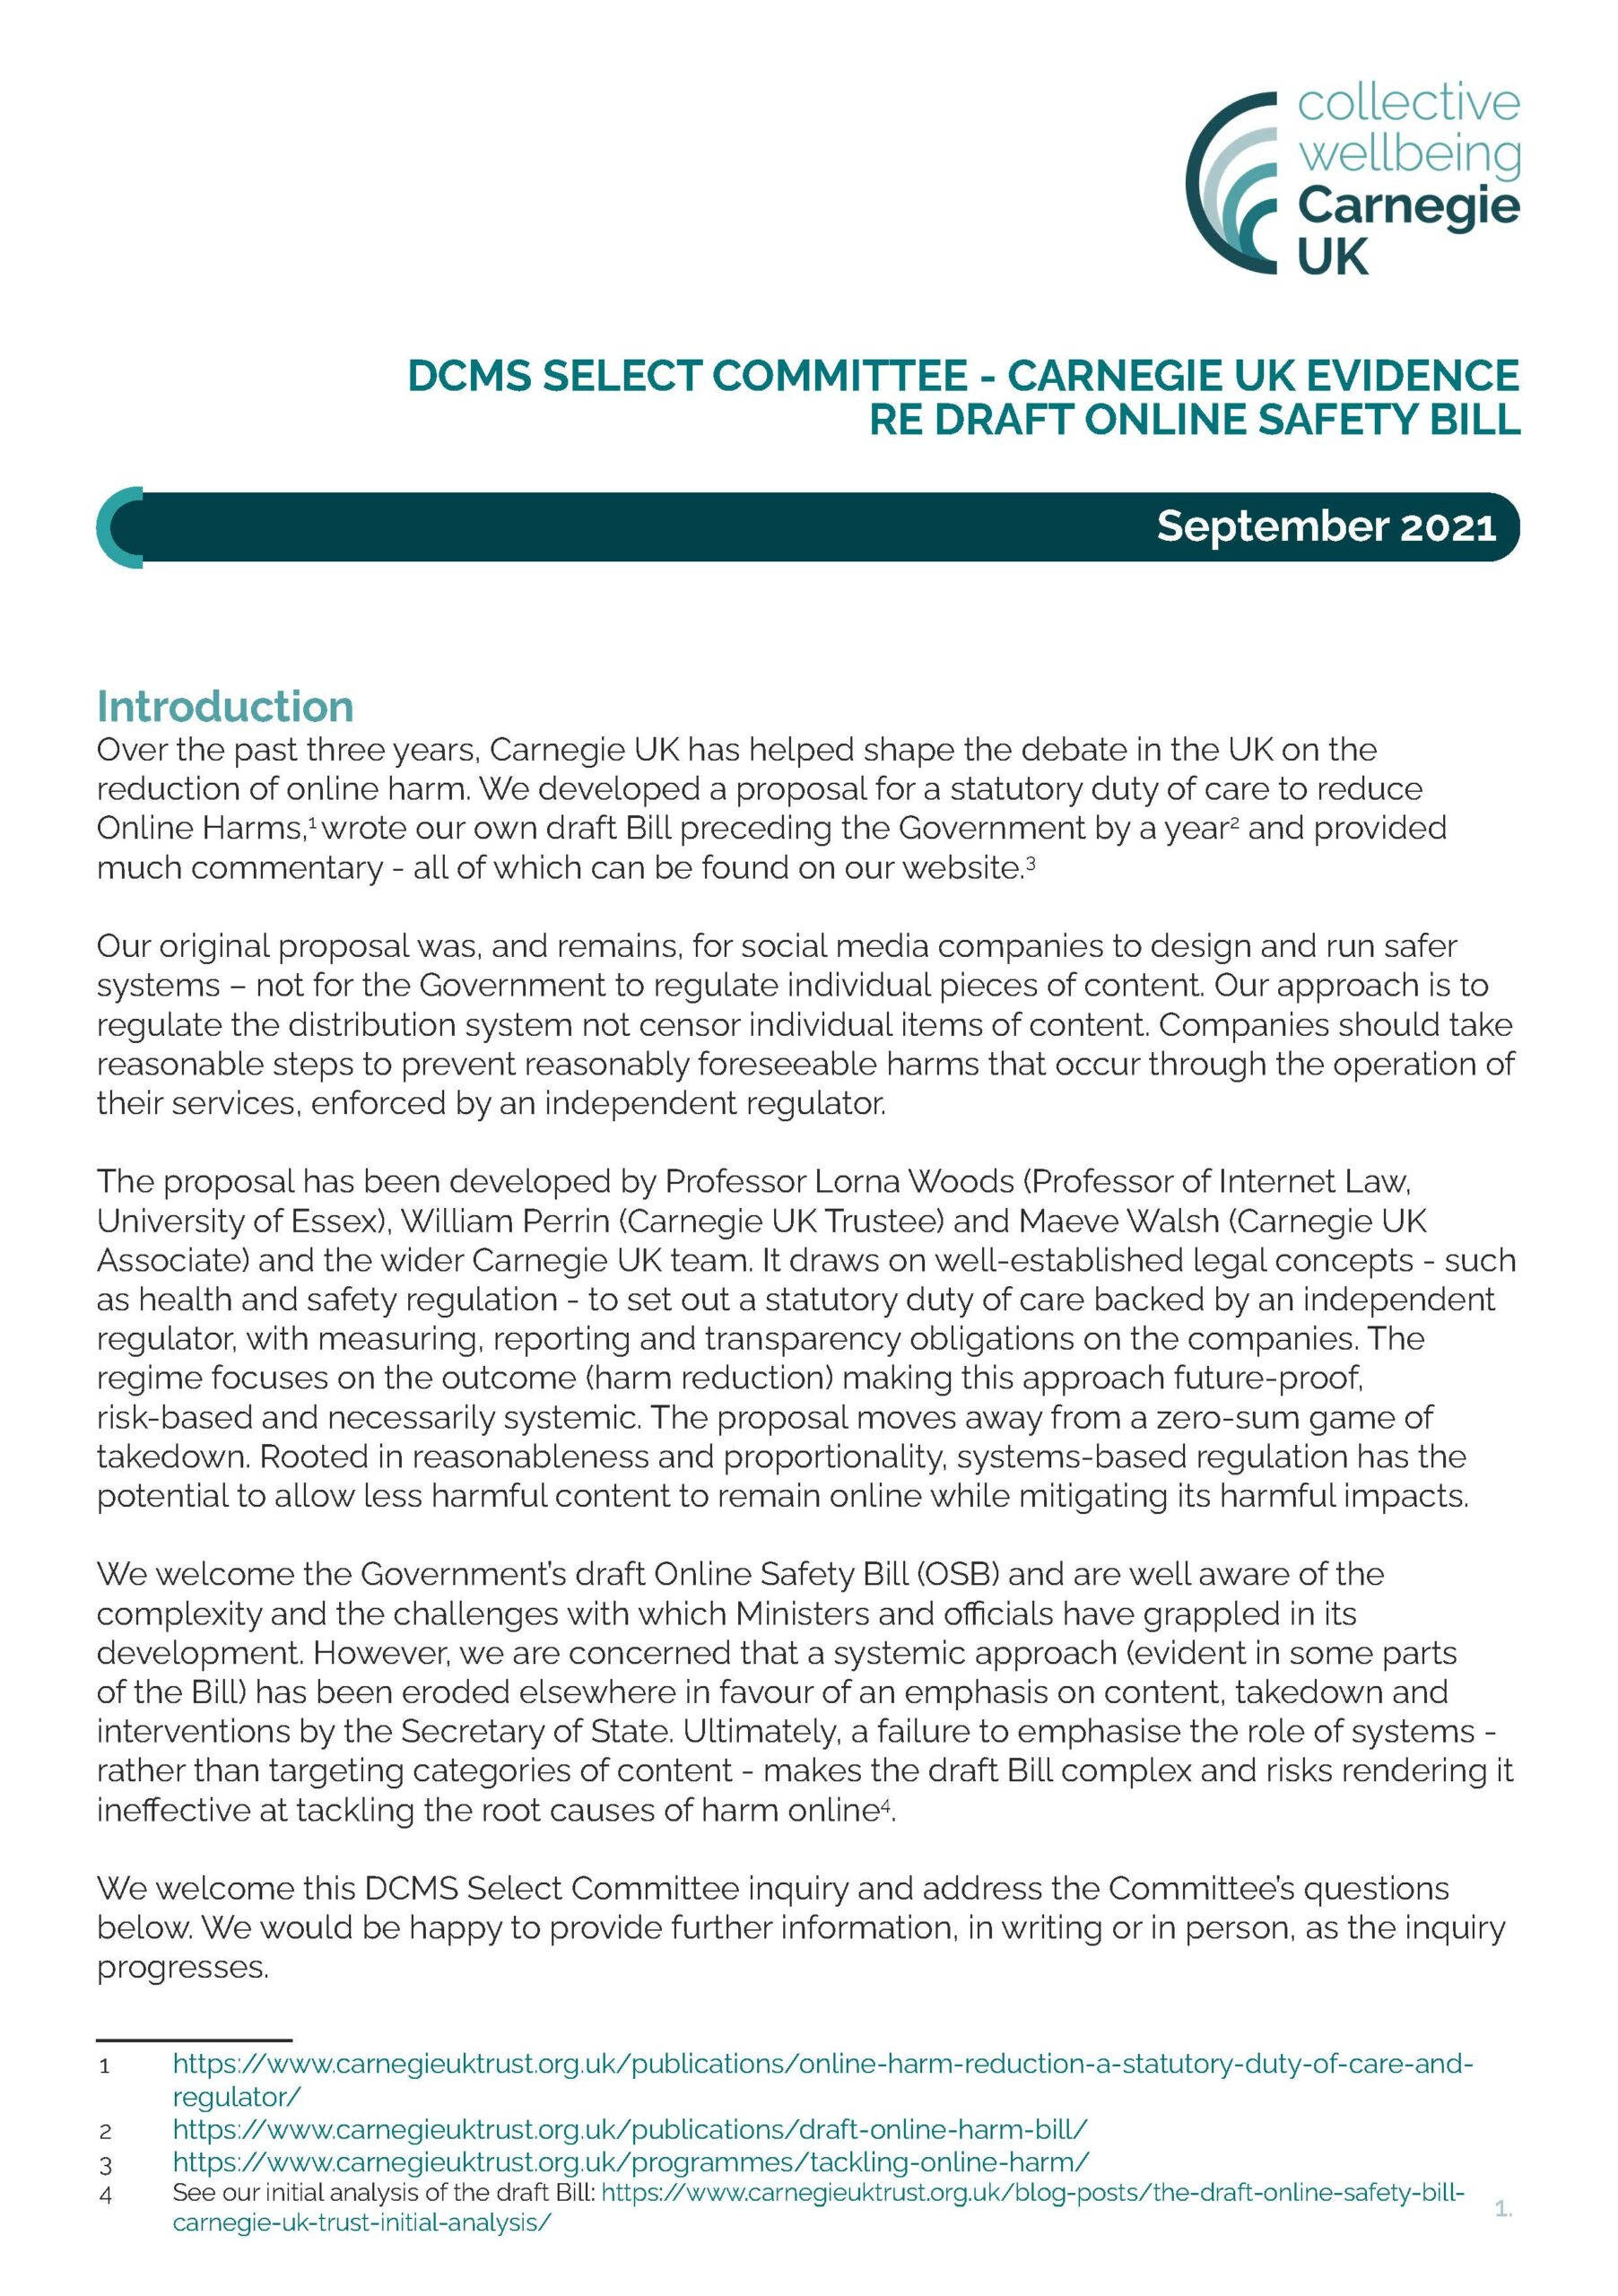 DCMS Select Committee – Carnegie UK Evidence draft online safety bill